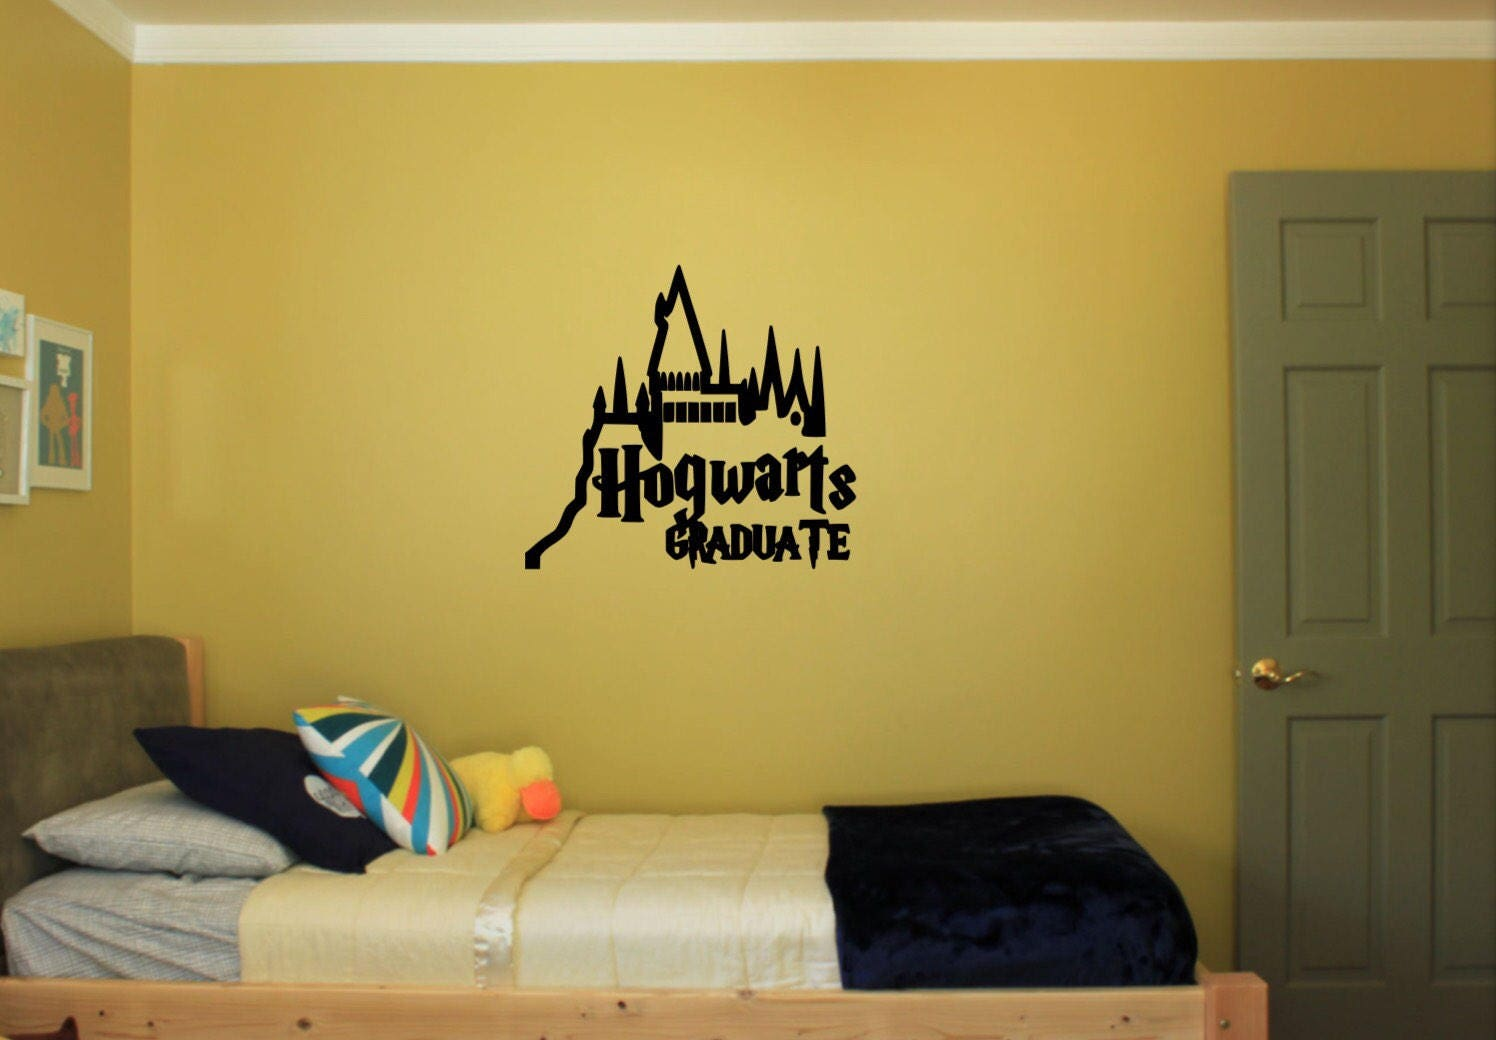 Hogwarts Graduate Vinyl Decal Sticker Attach to Any Smooth